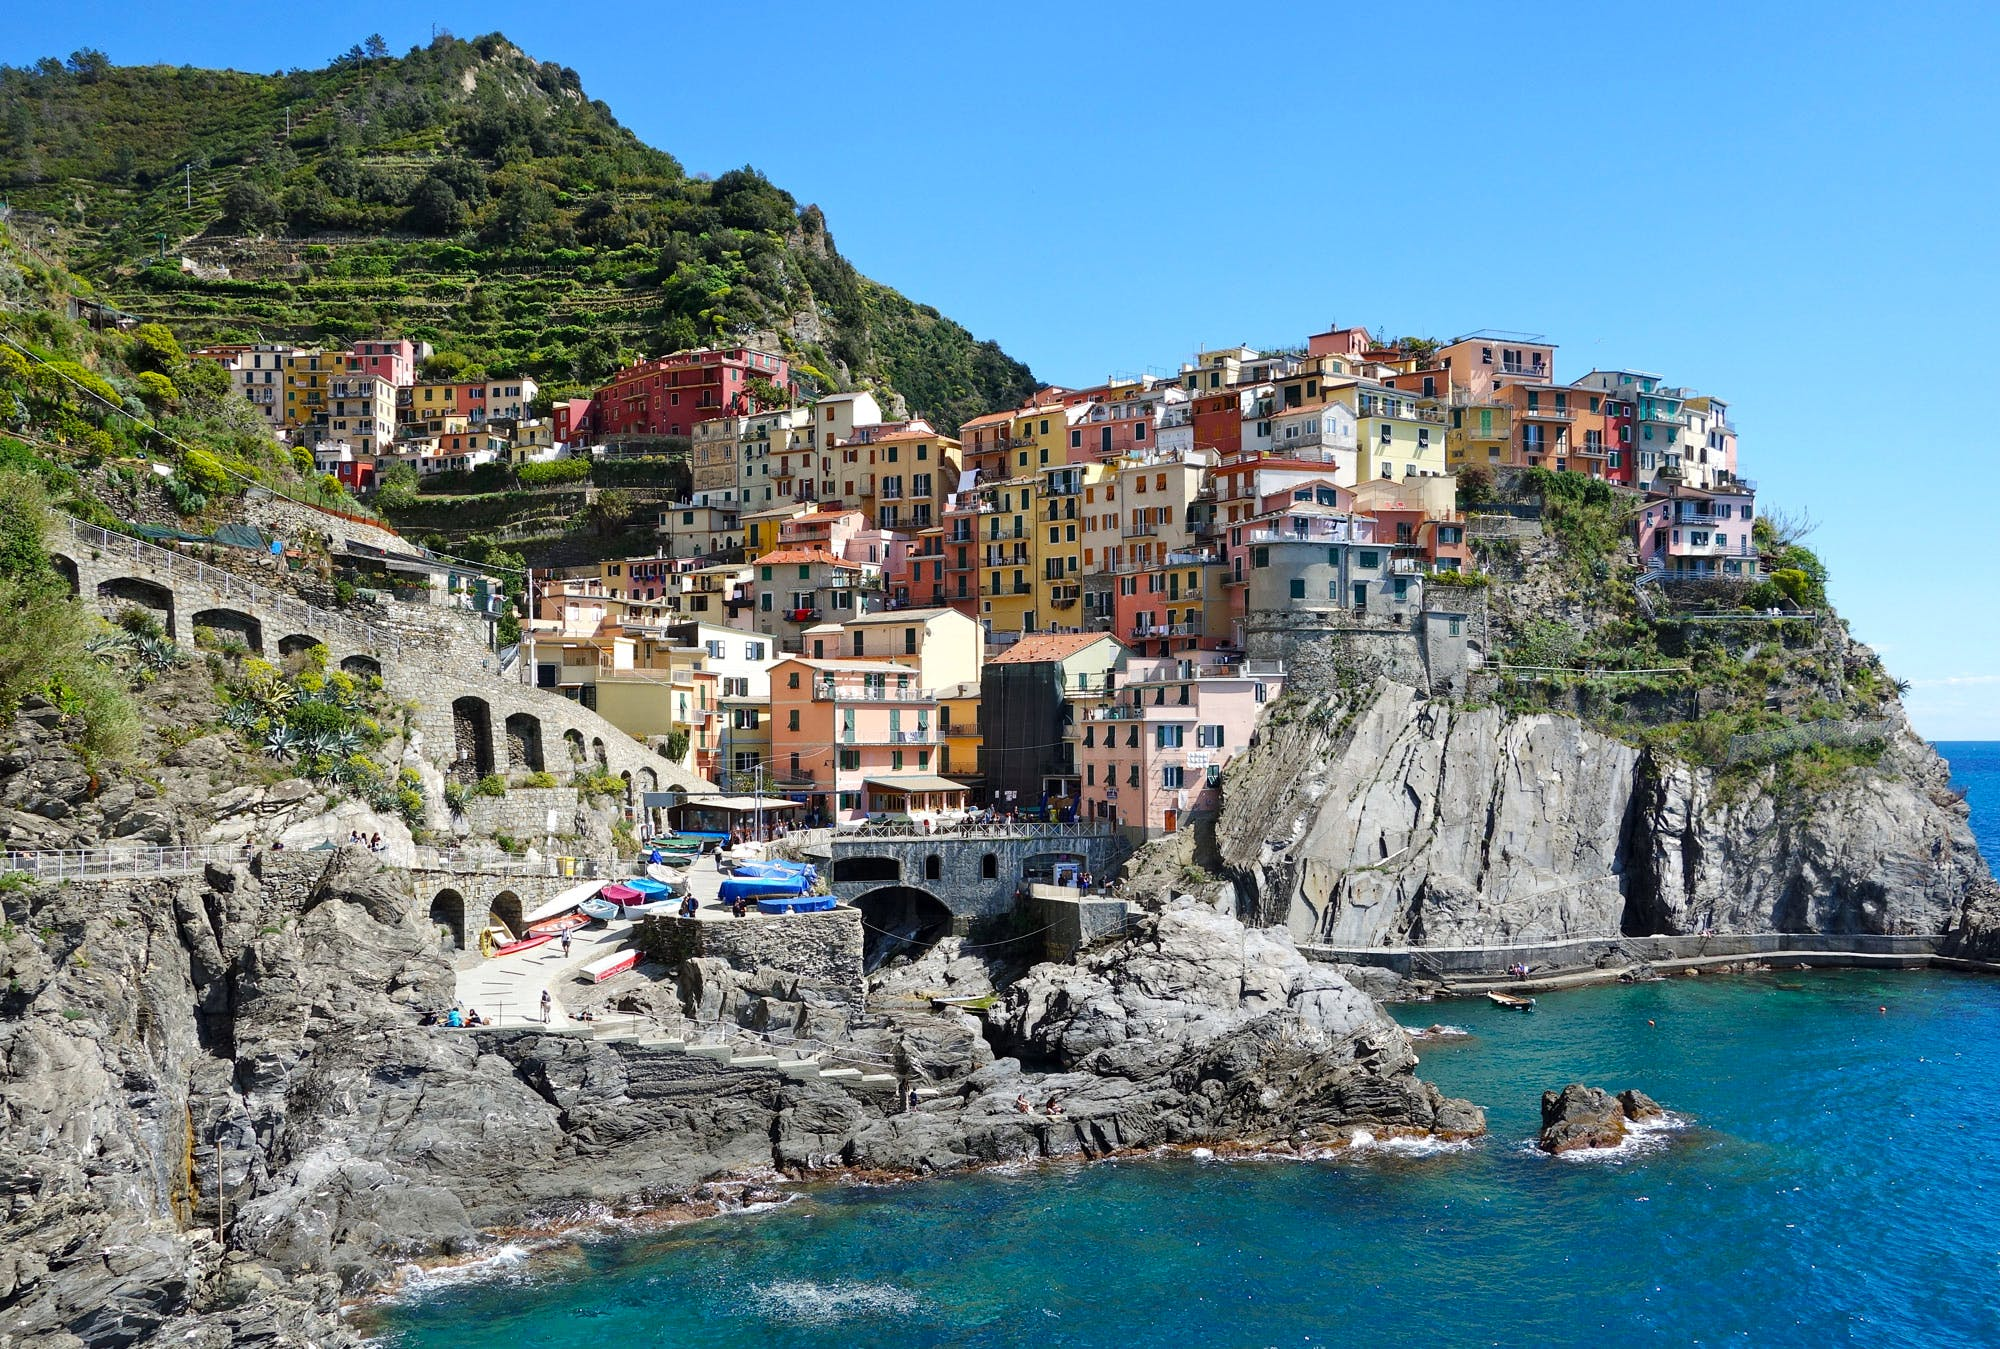 Cinque Terre An Introduction To The Five Towns Of Cinque Terre